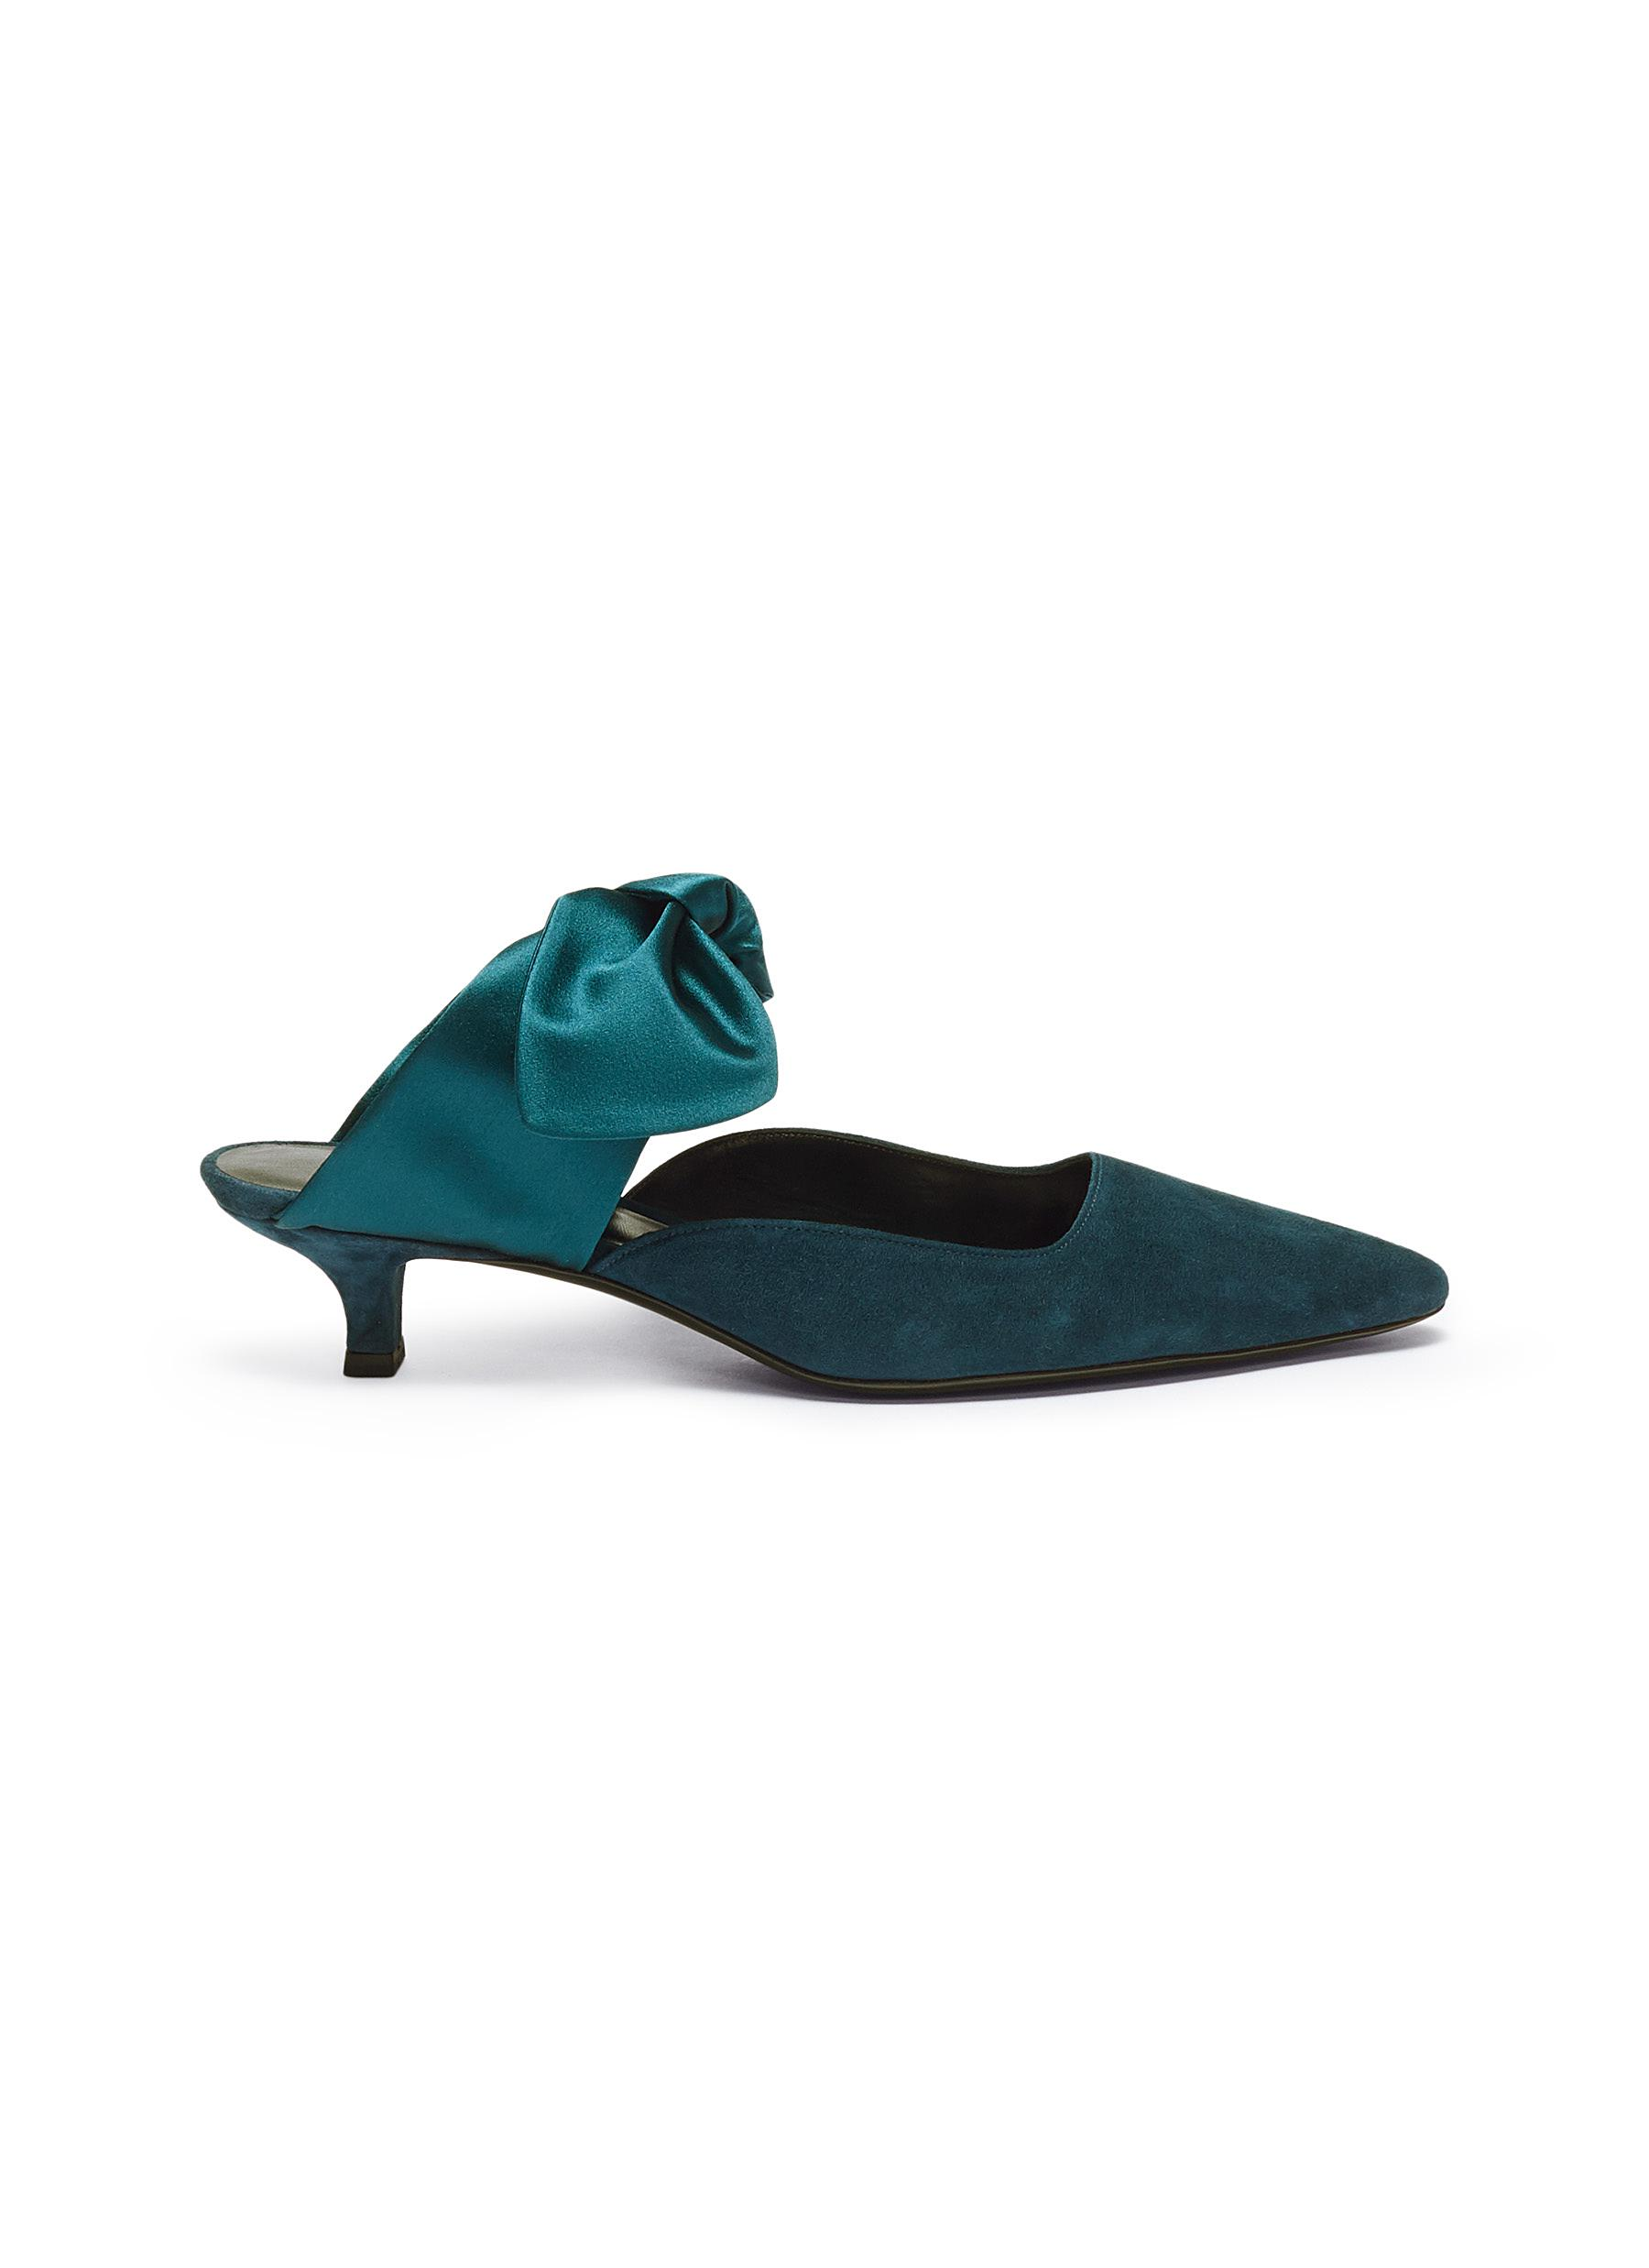 Coco satin bow suede mules by The Row